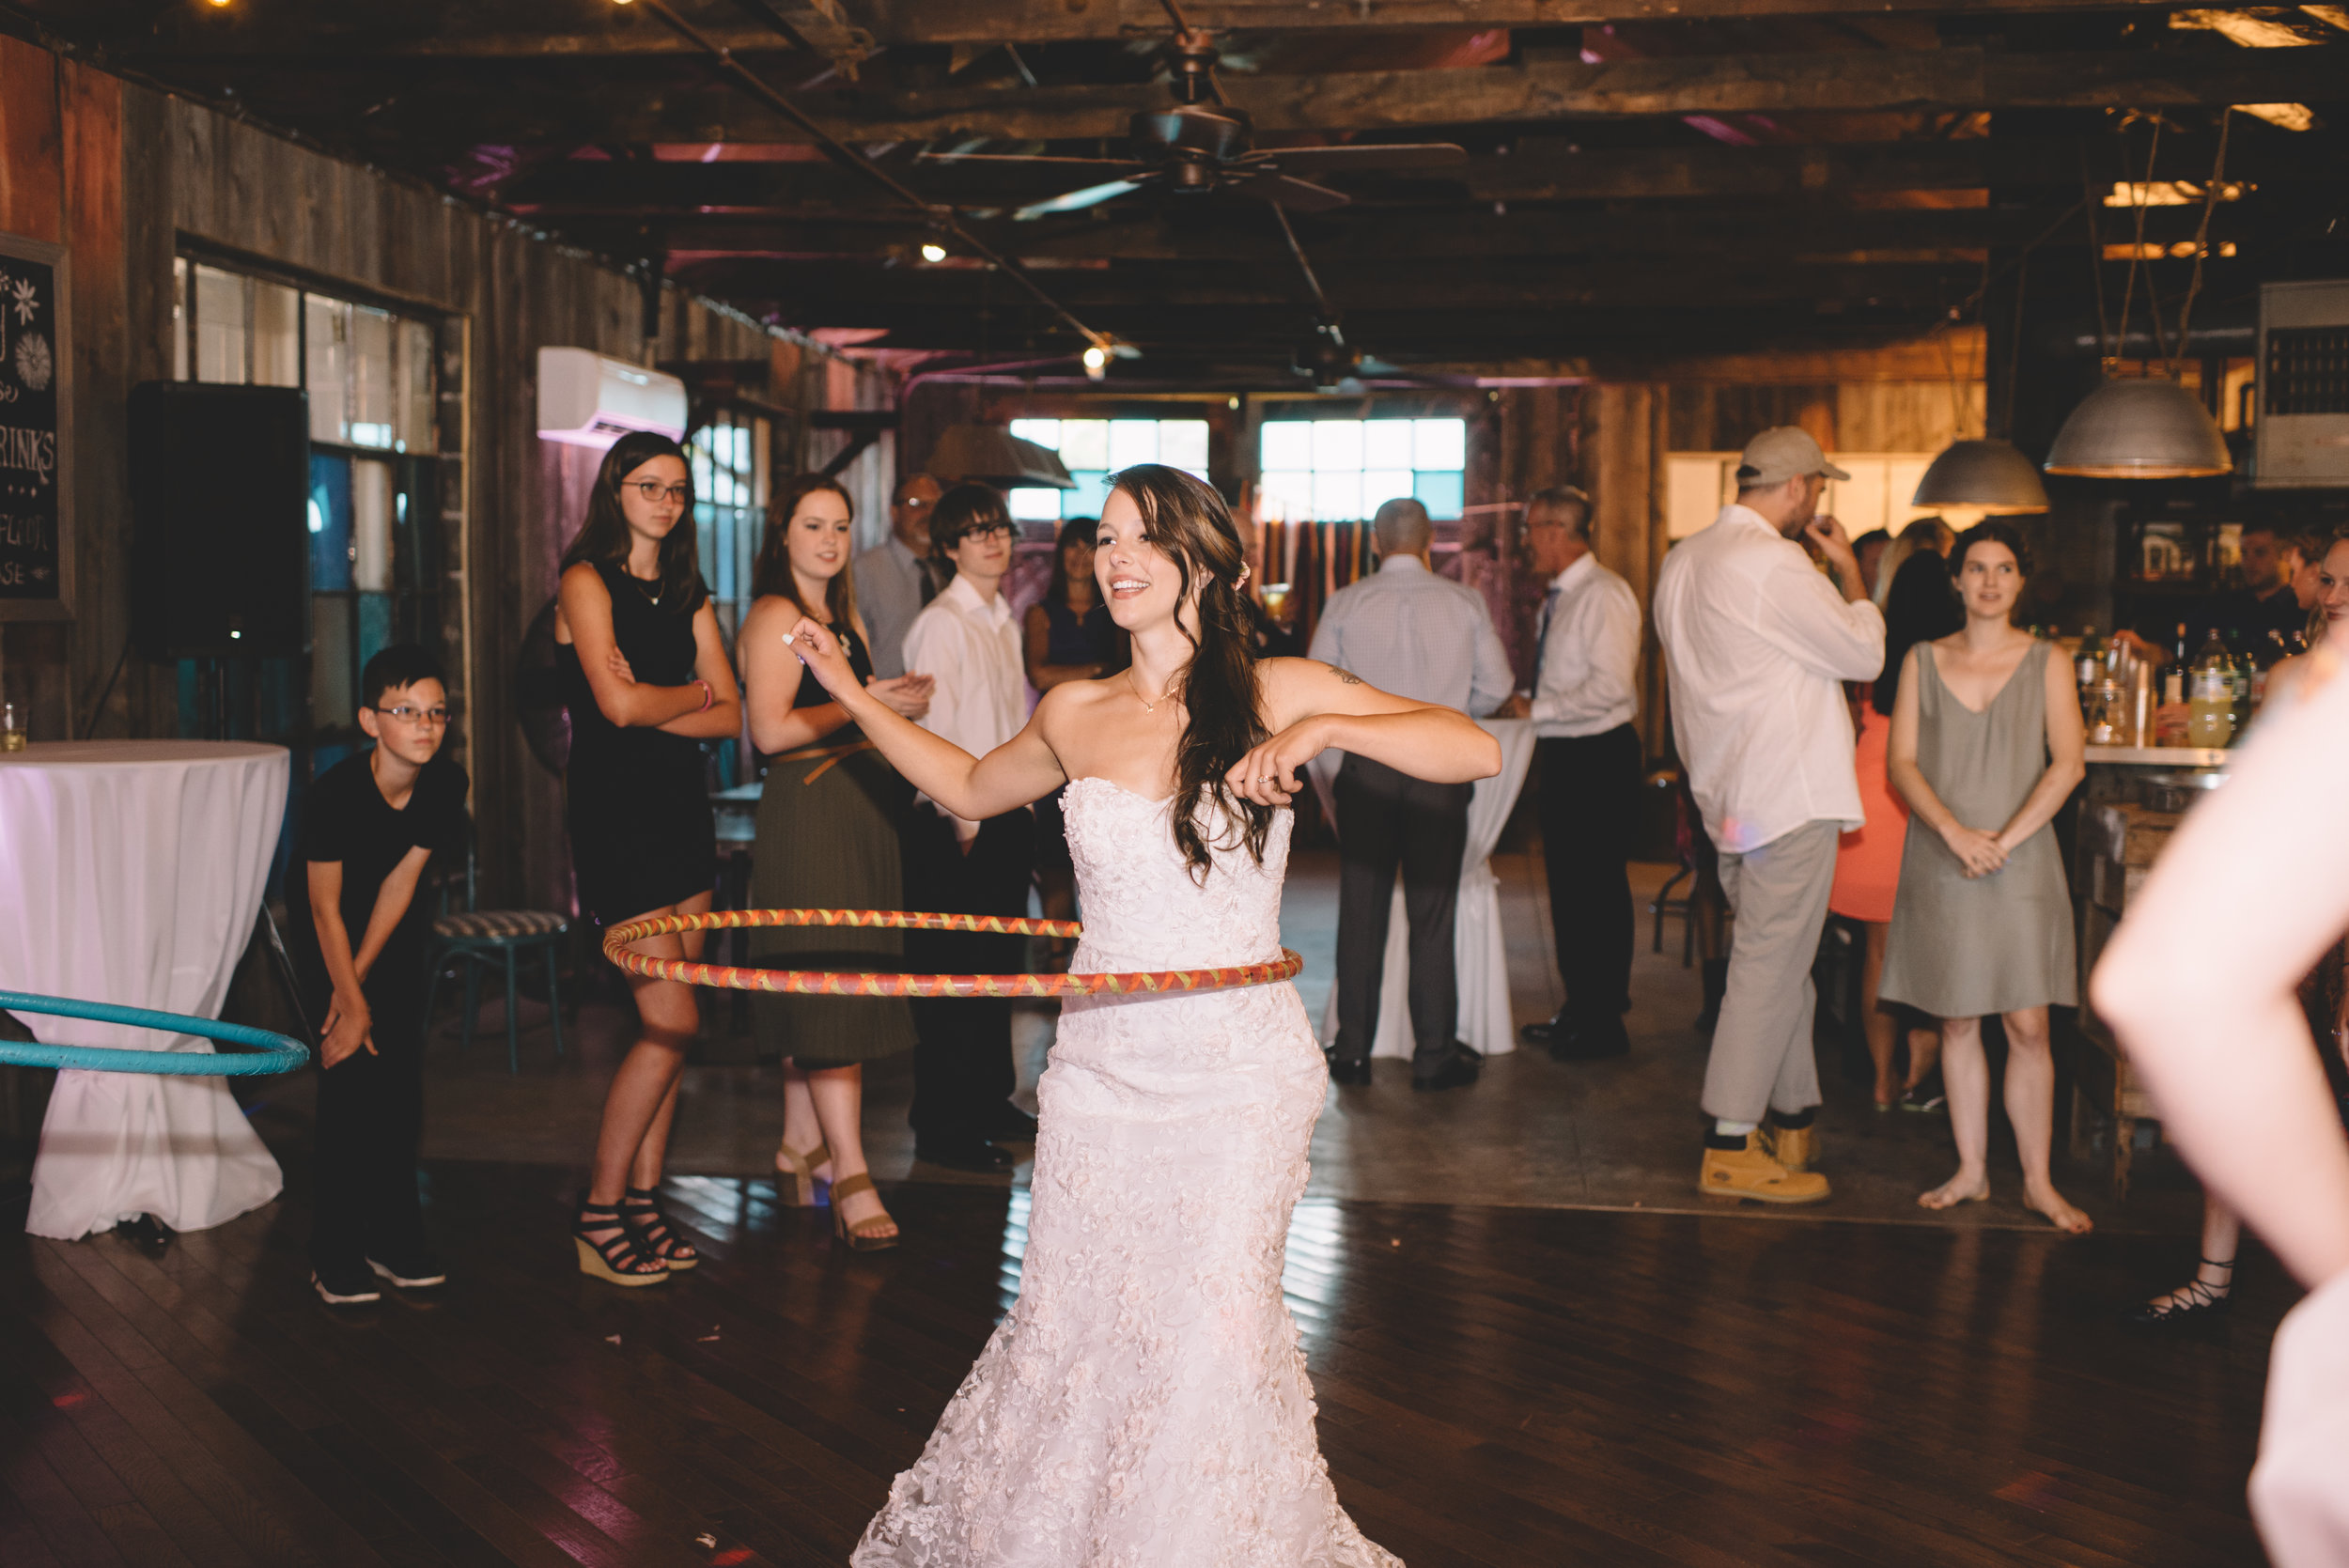 Wedding at the Sundance Studios in Benton Harbor, MI